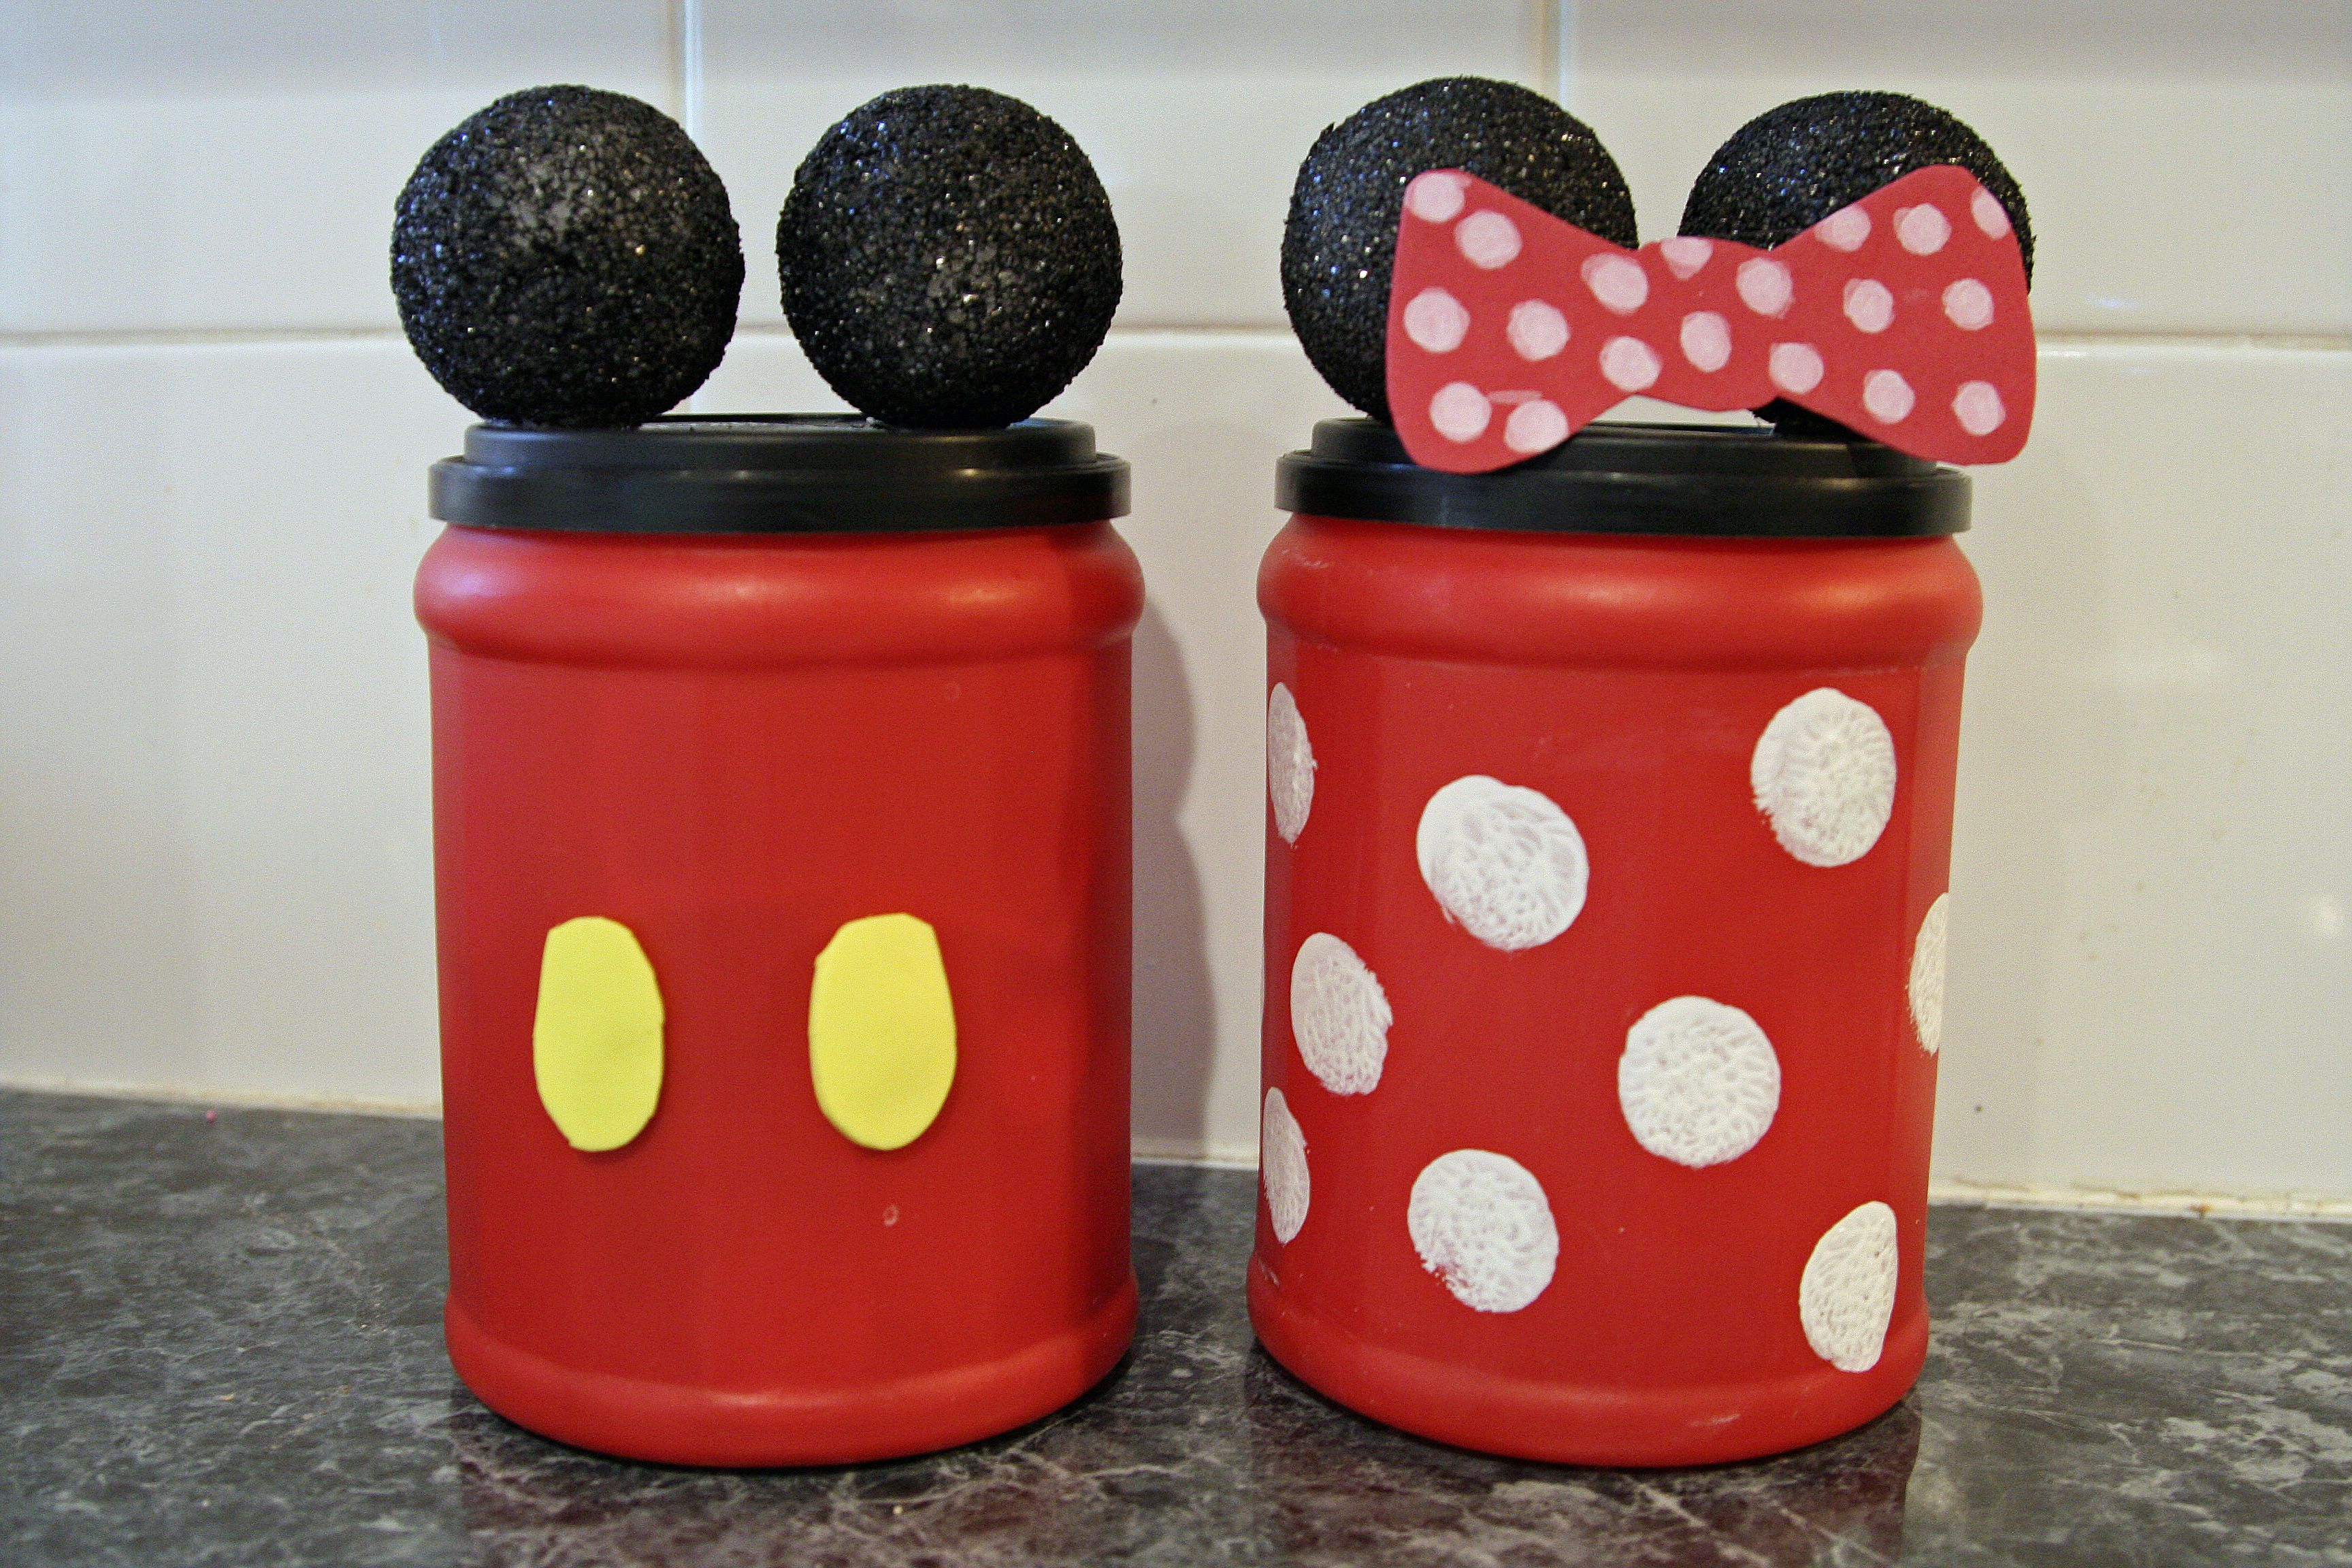 Our change banks for saving money for upcoming Disney World trip.  Made with Folgers coffee canisters, craft foam, paint and styrofoam balls.